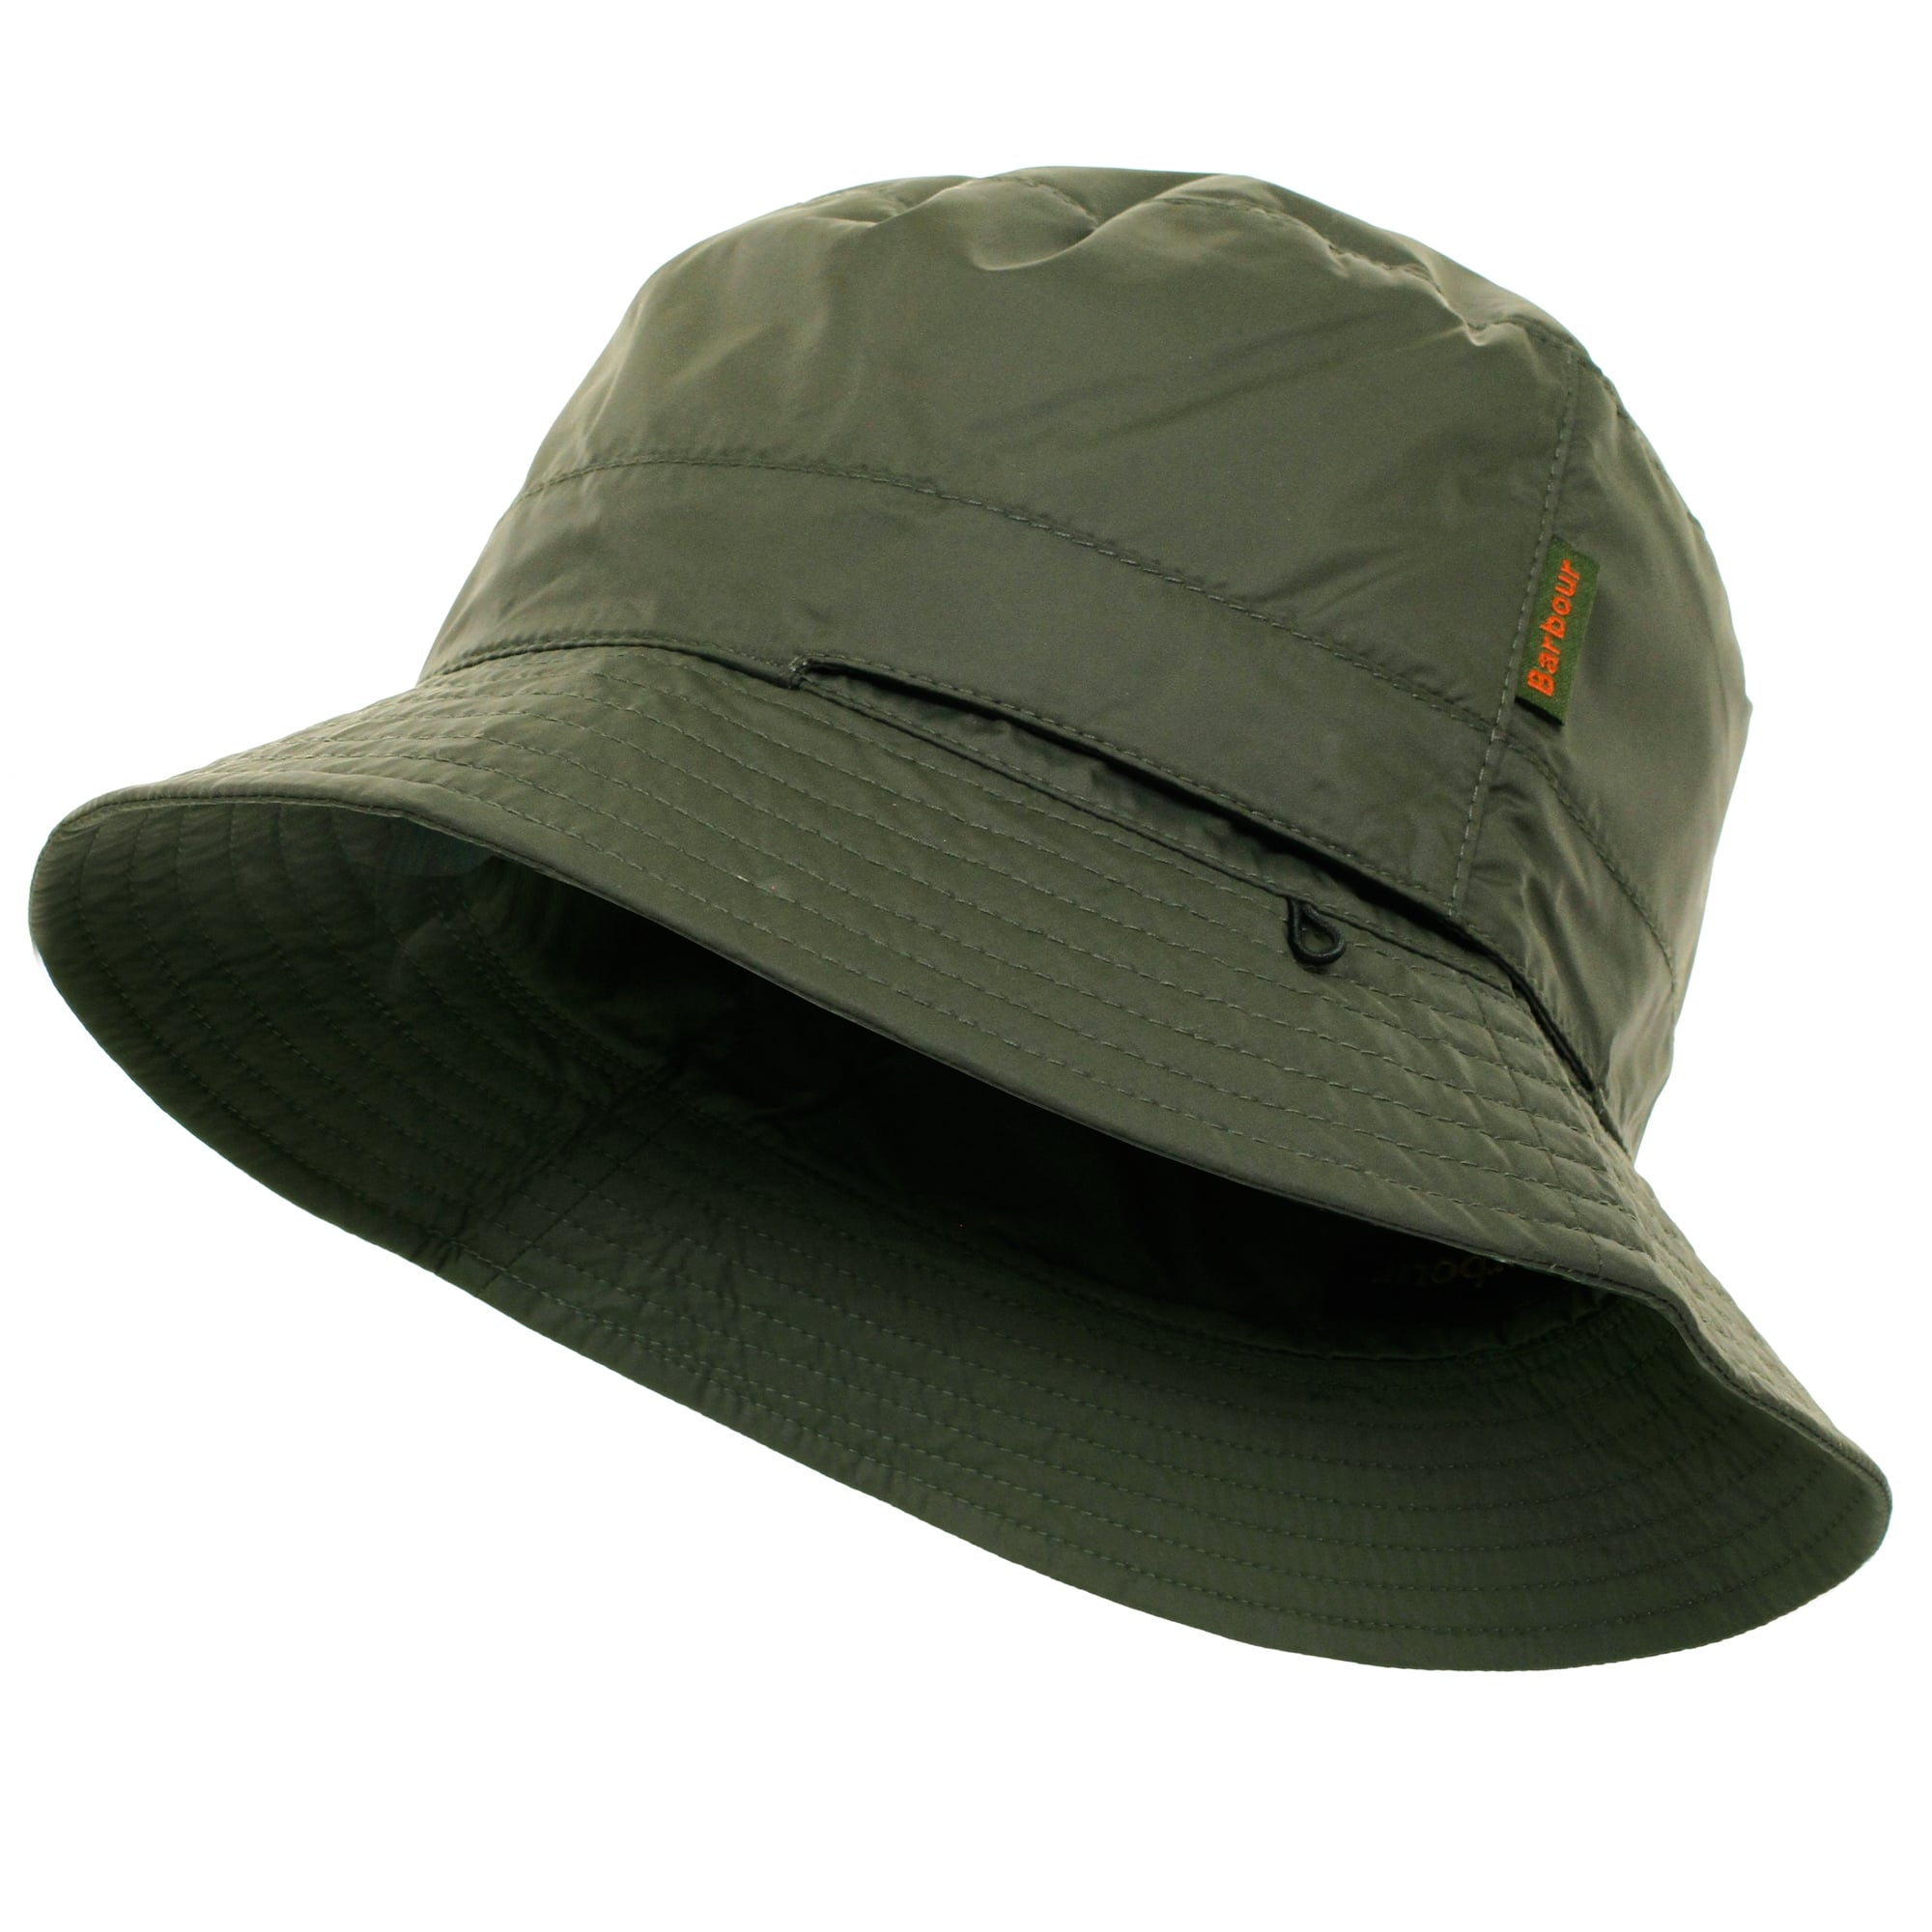 barbour-taran-sports-olive-bucket-hat-mha0419ol35-p26476-105078_image